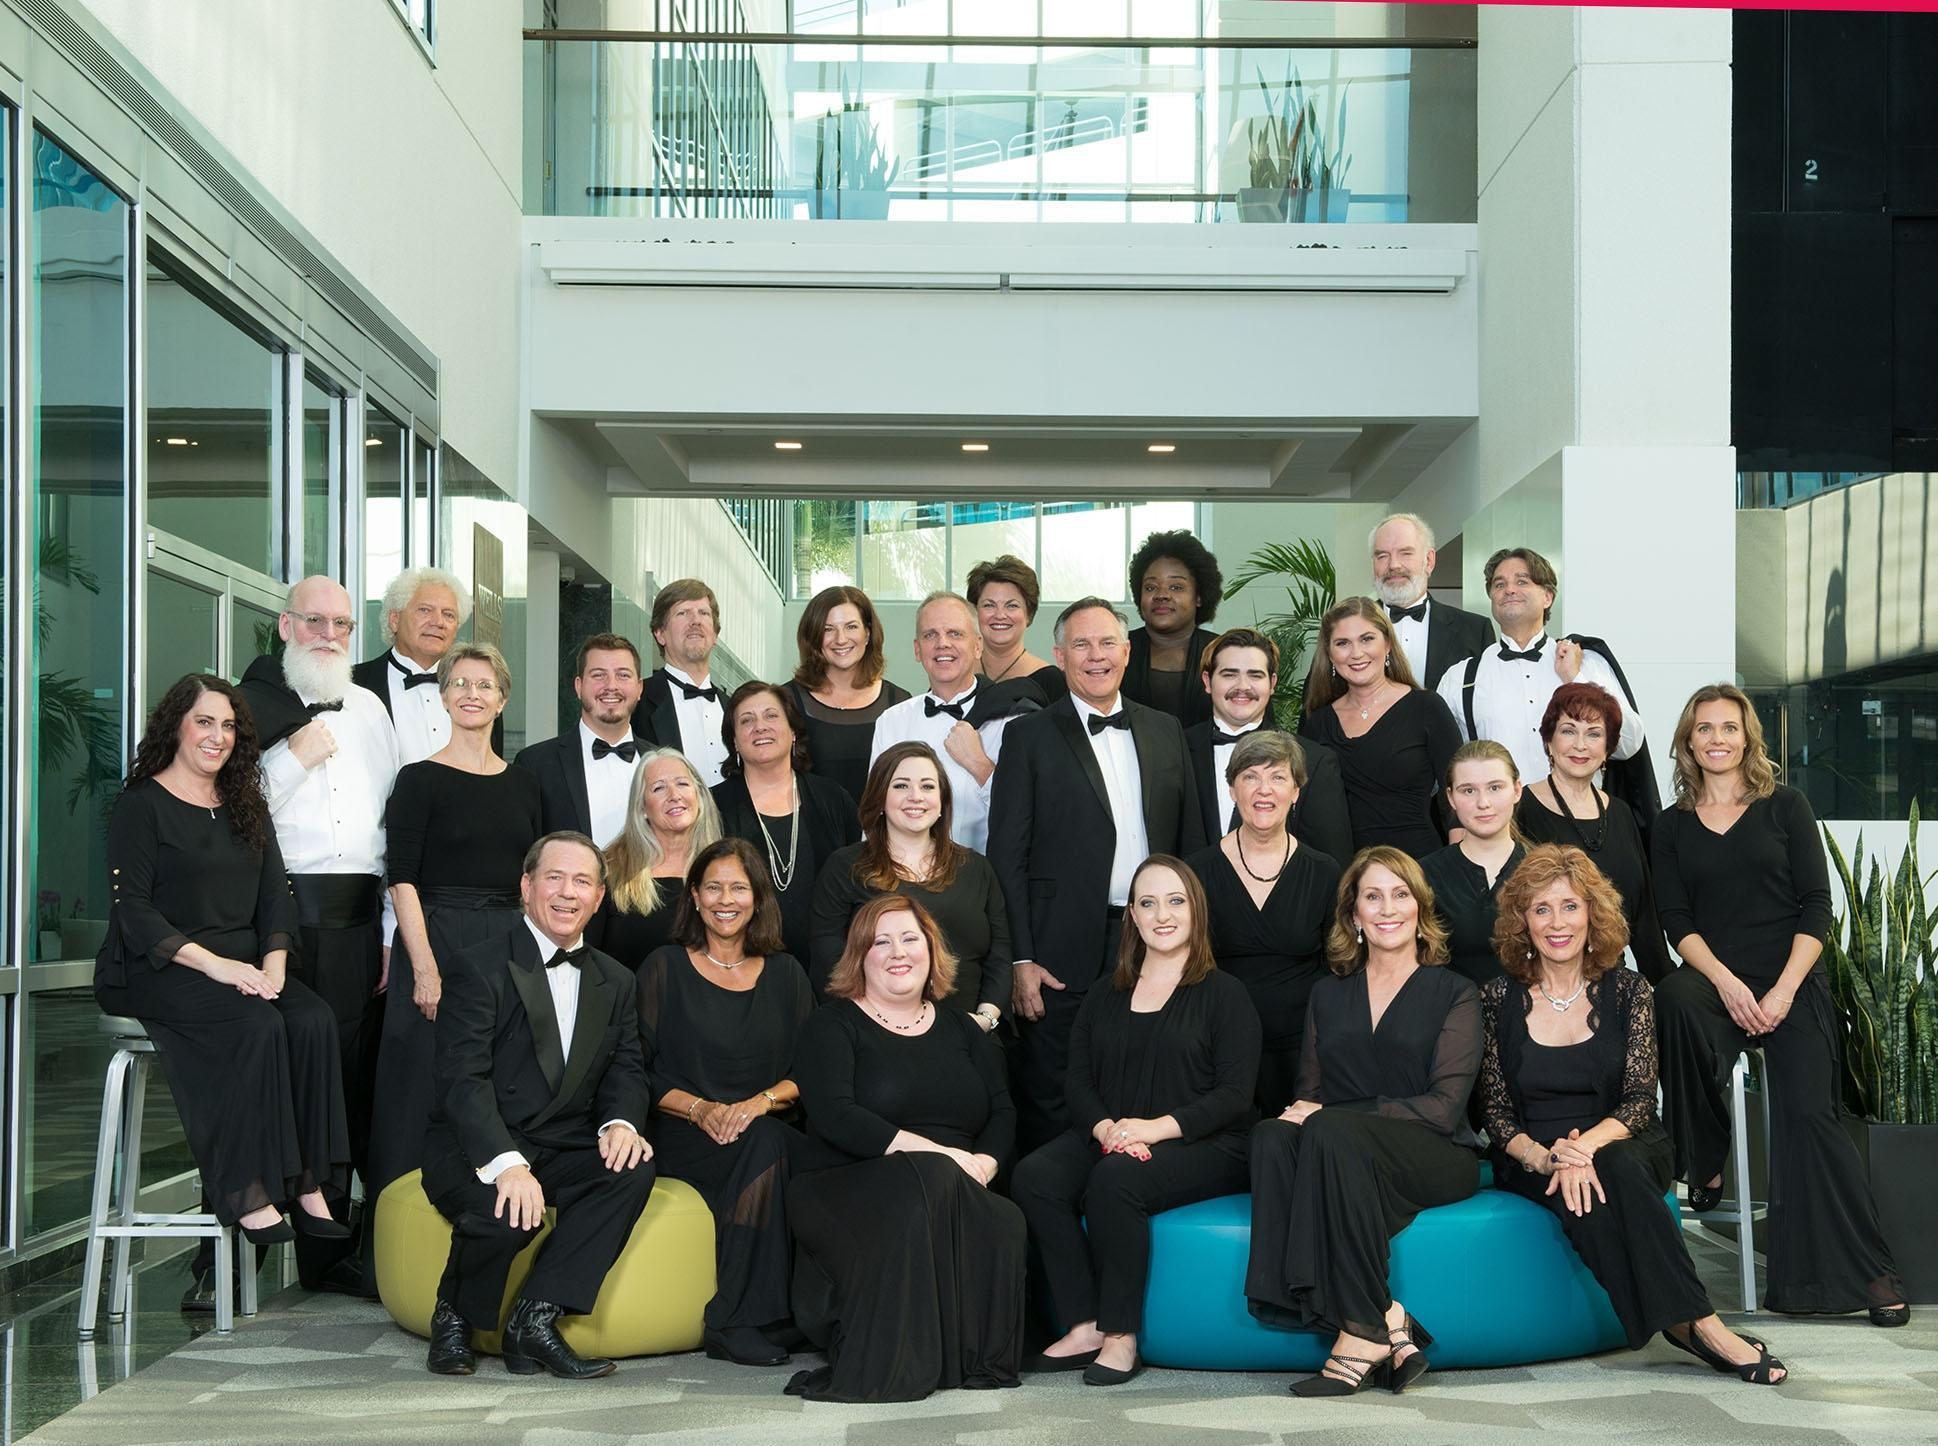 Music Review: Choral Artists Get Adventurous In Spiritual Music Concert